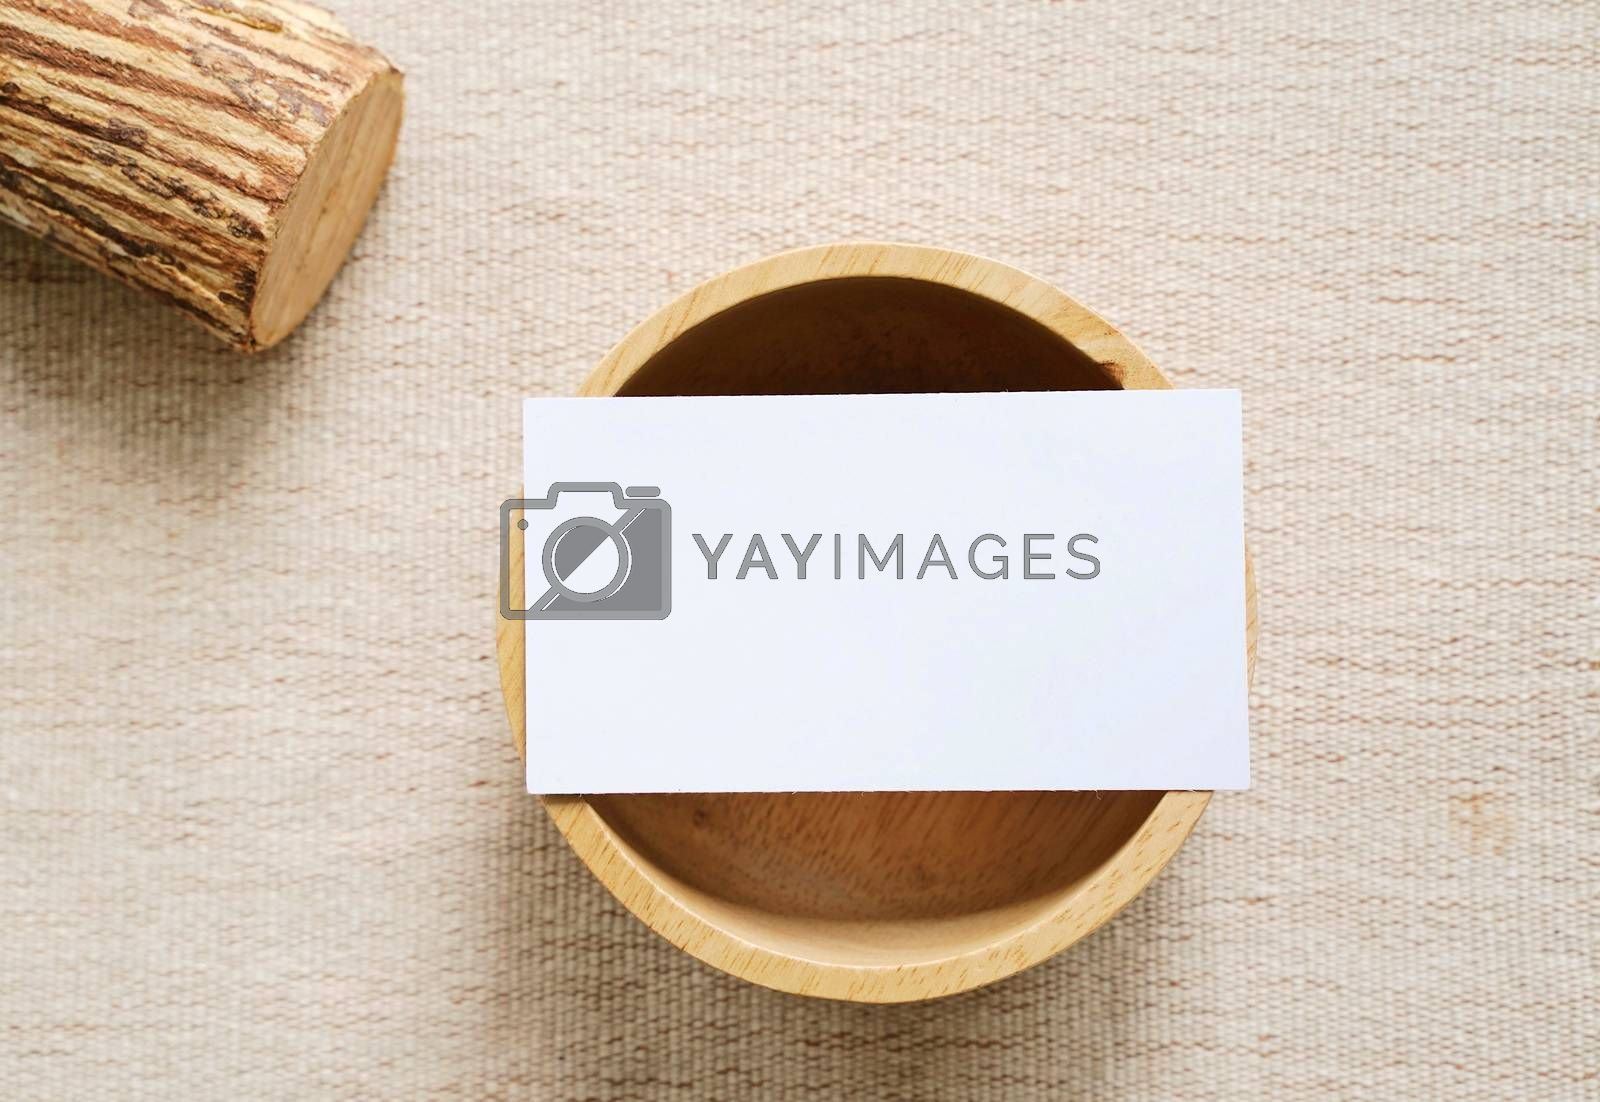 Royalty free image of Flat lay of branding identity business name card on wooden conta by nuchylee